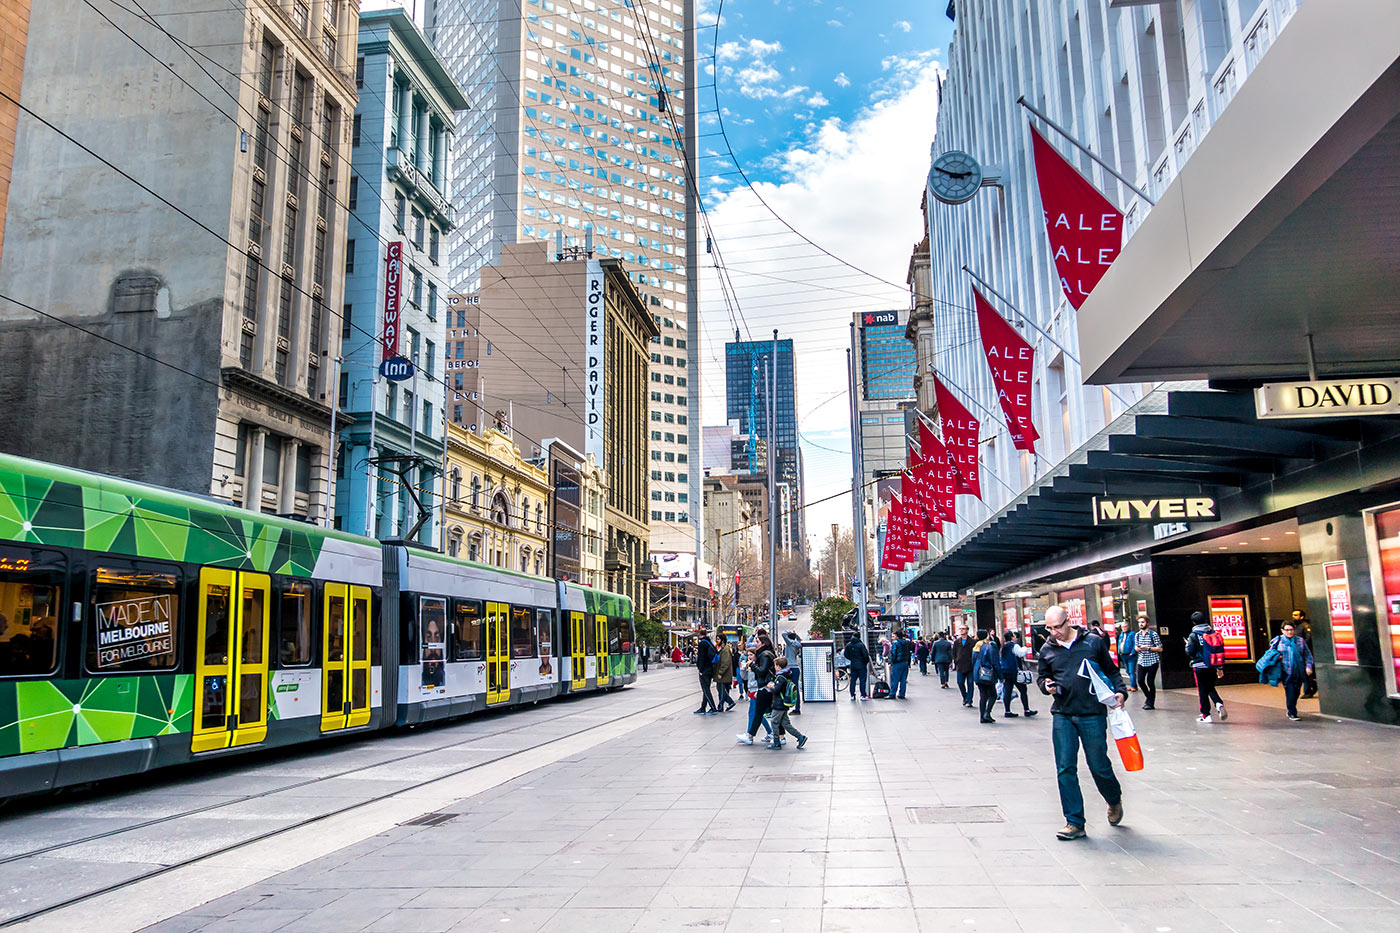 How will the Victorian Government's rent relief for commercial tenants bring financial support to affected businesses?